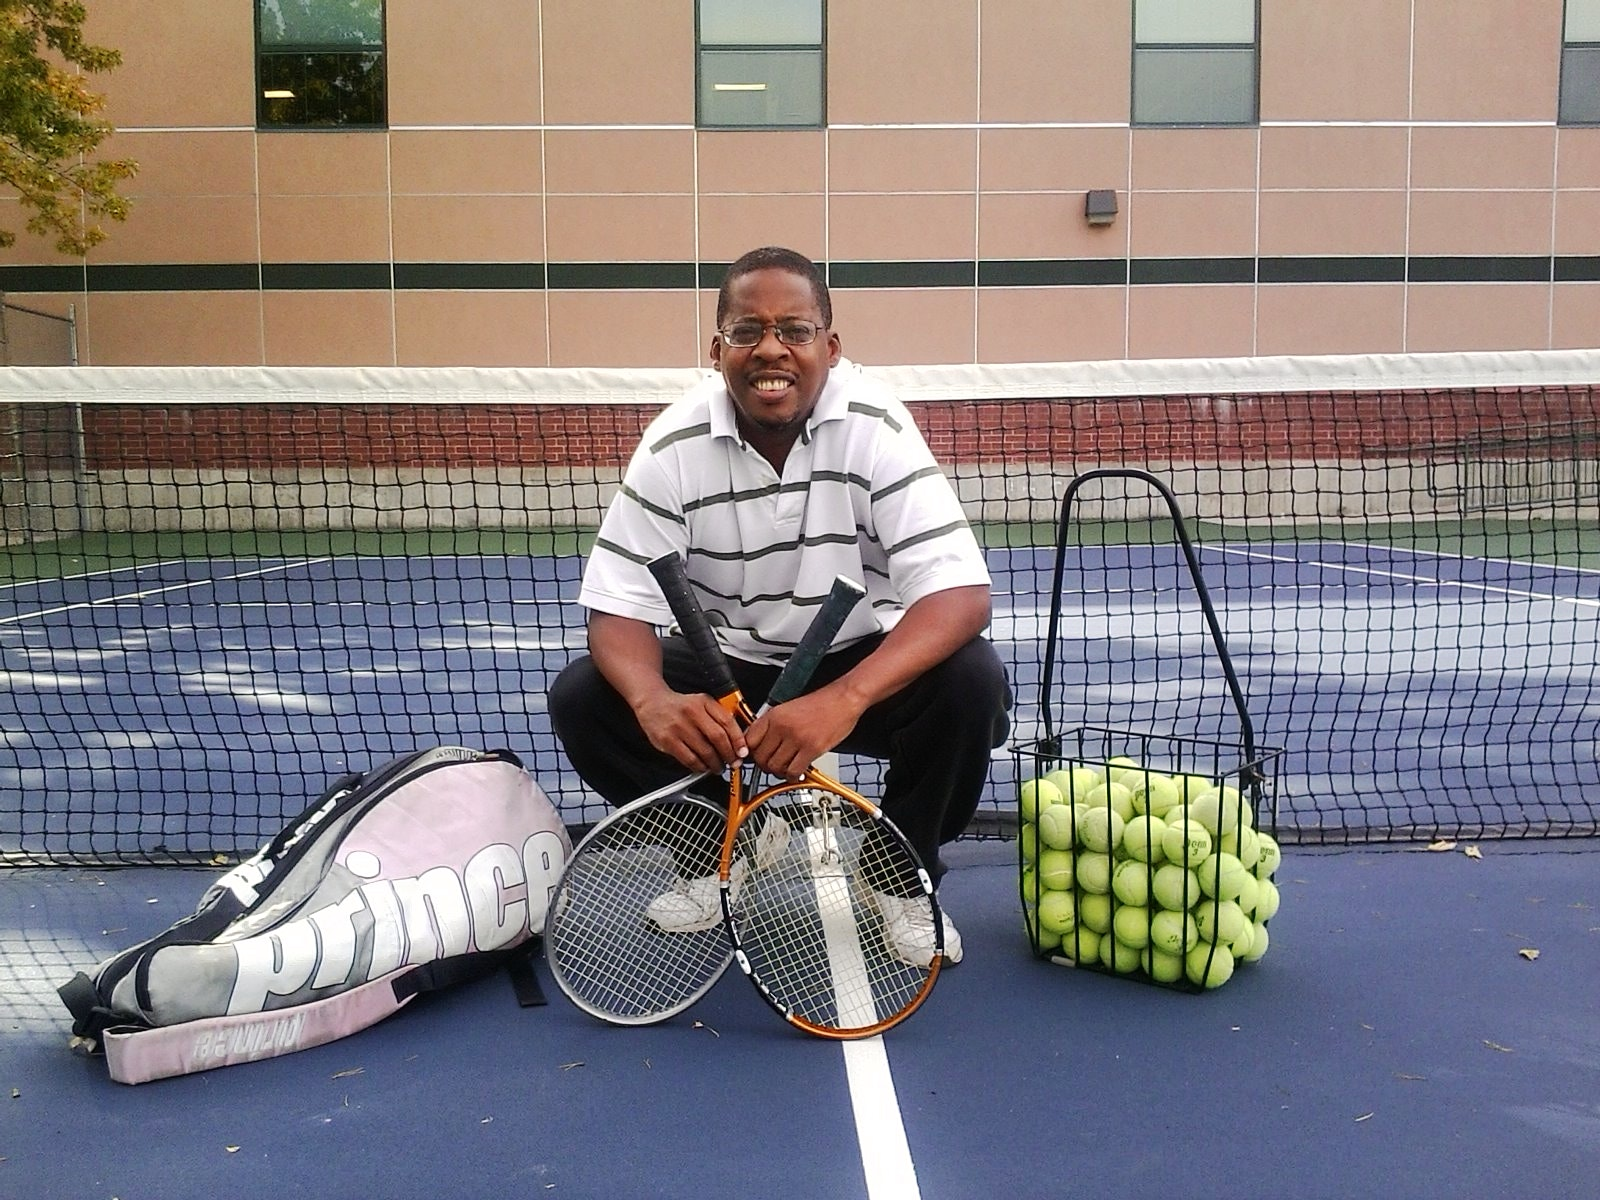 Kerry N. teaches tennis lessons in Denver, CO